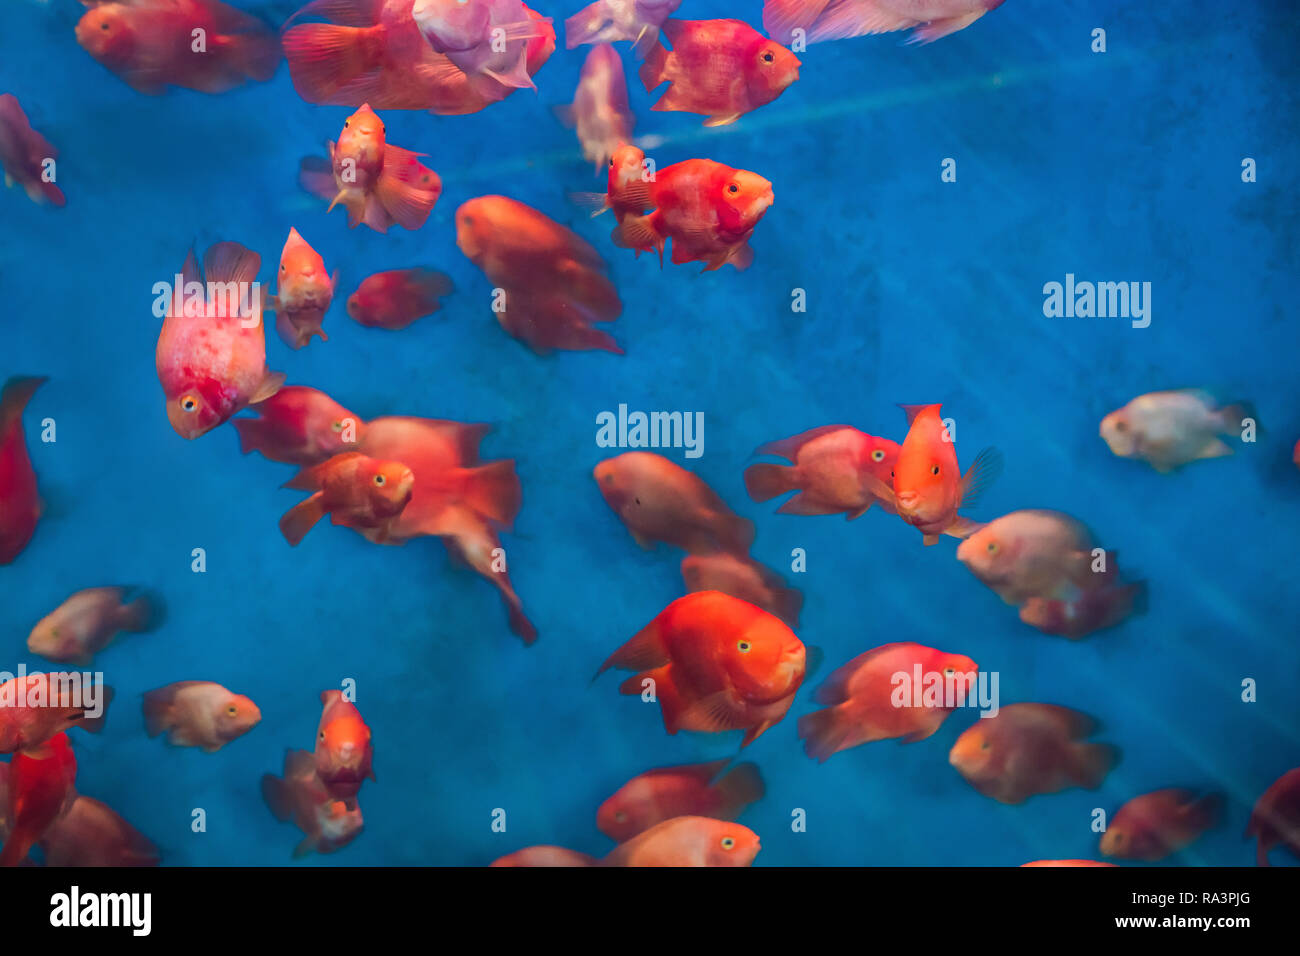 Many red fish in a blue aquarium Stock Photo